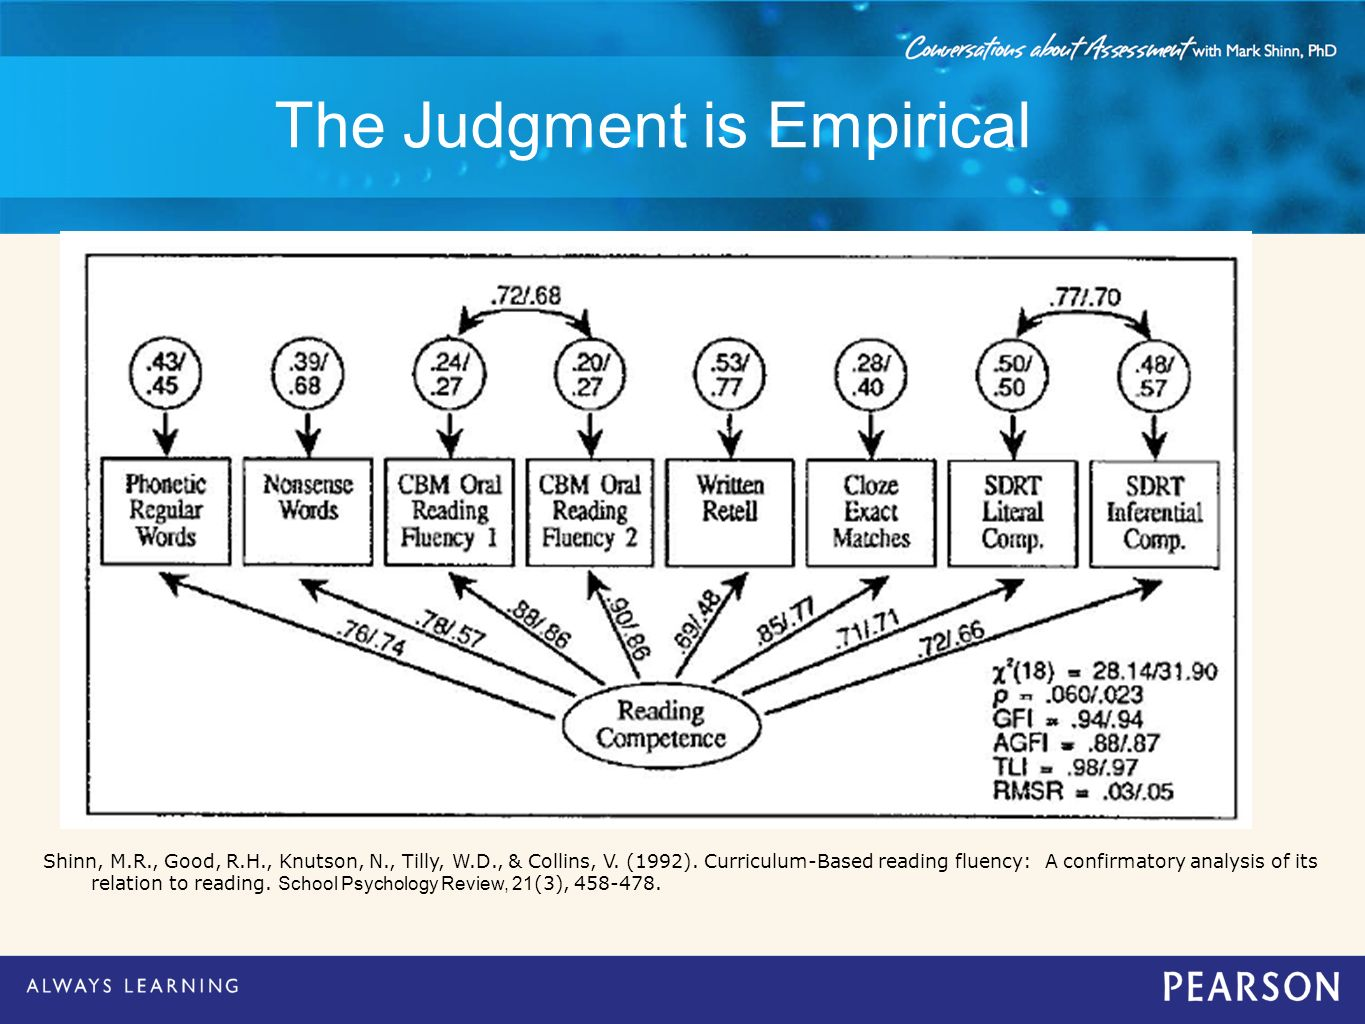 The Judgment is Empirical